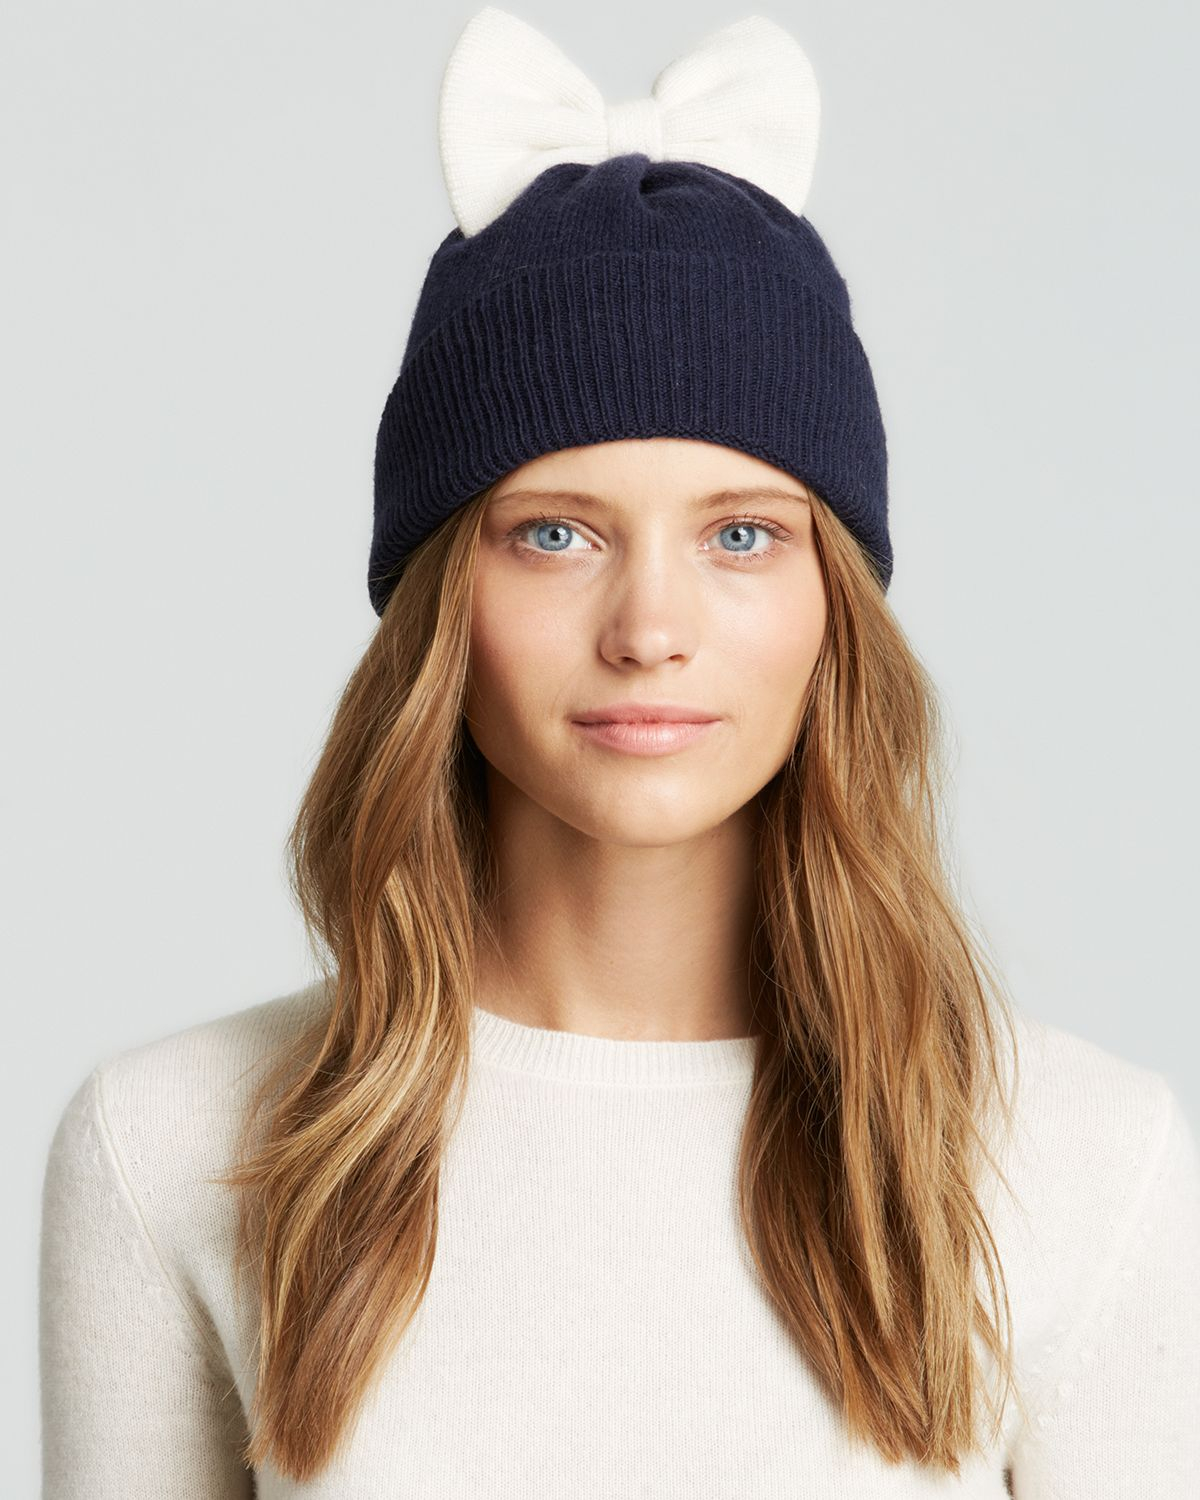 Lyst - Kate Spade Colorblock Bow Beanie in Blue 9bc28f946a6